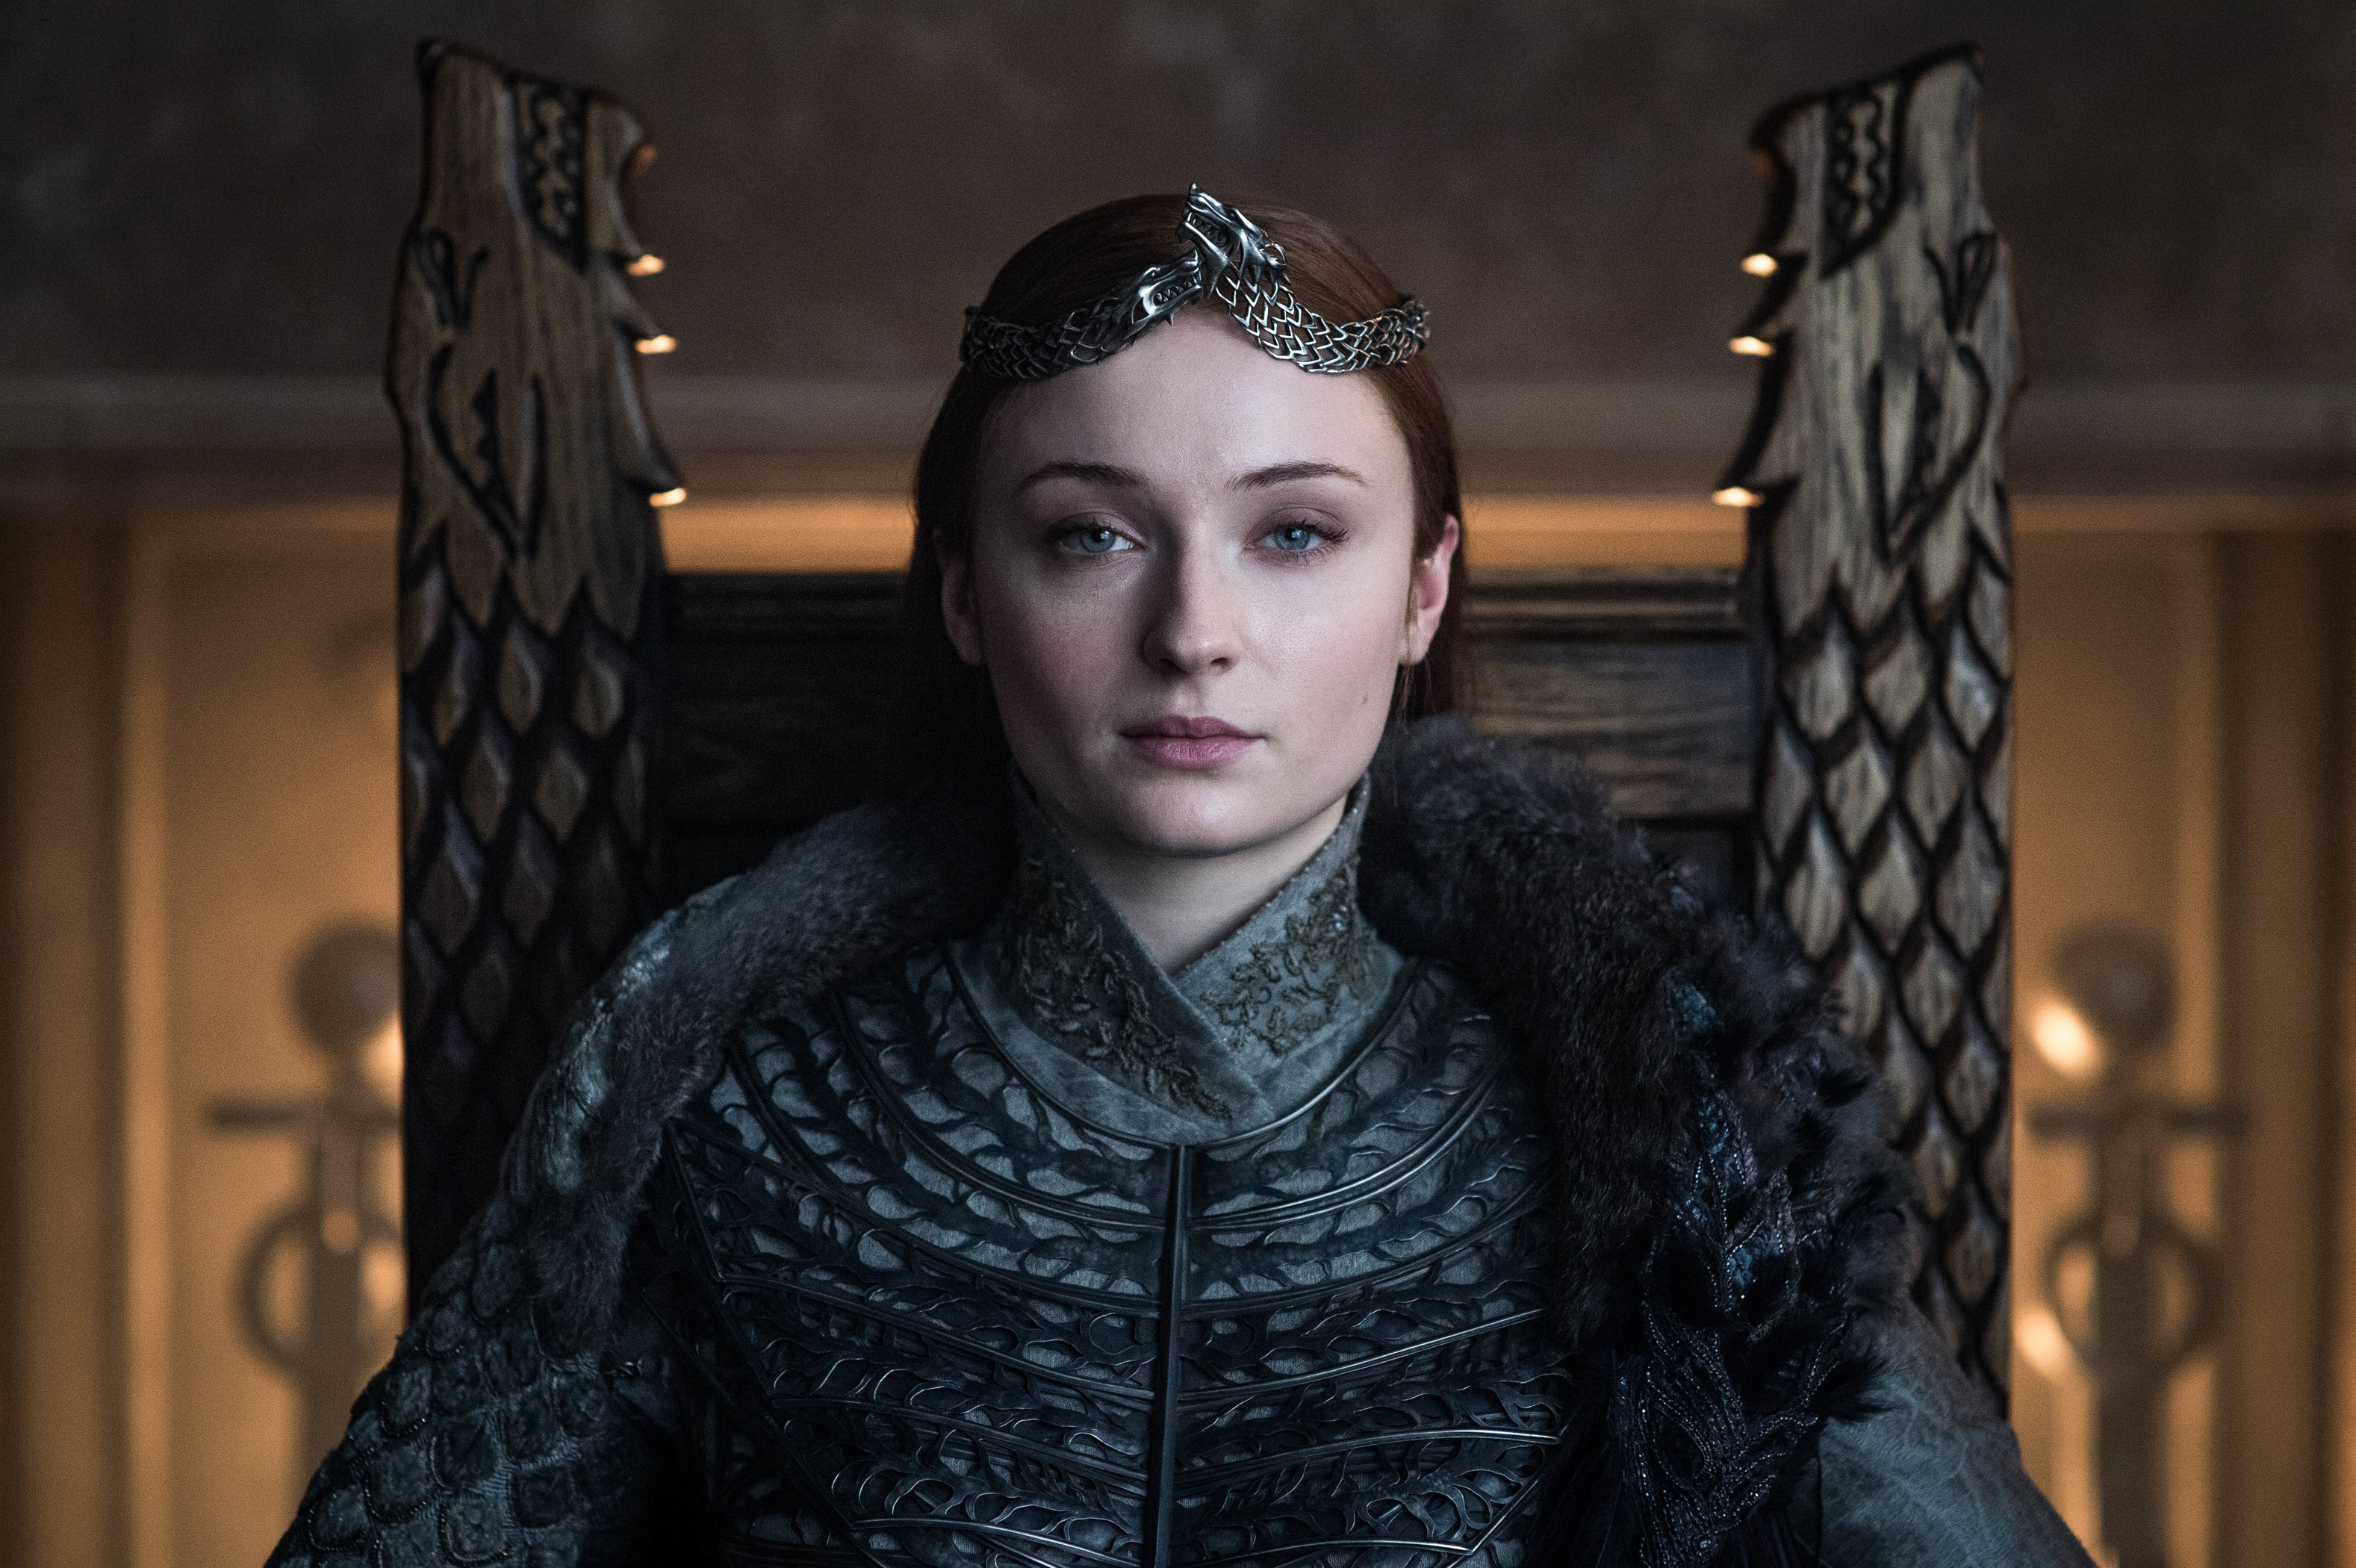 What Sansa Stark's coronation hairstyle says about her character development